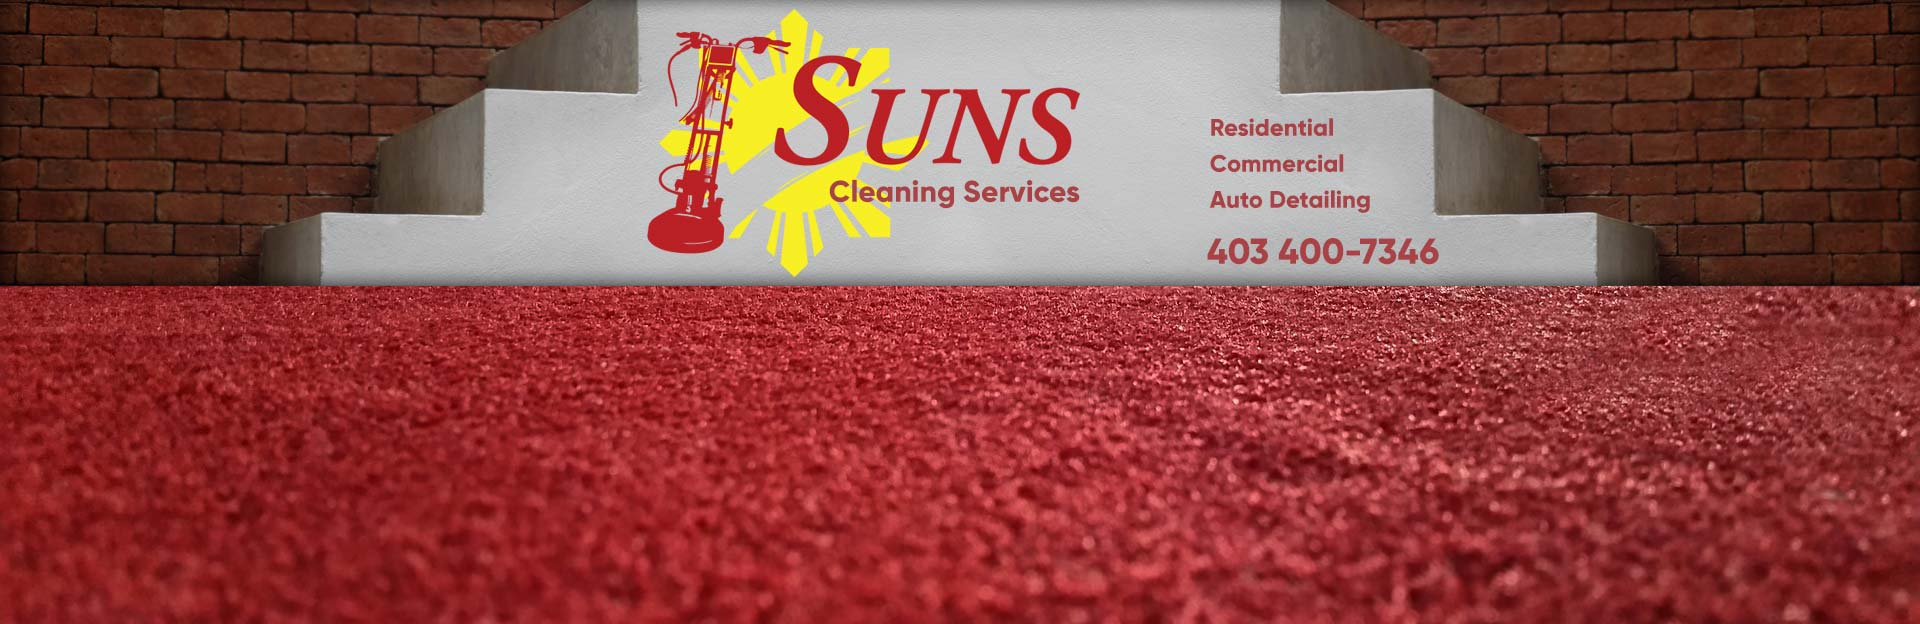 Suns Carpet Cleaning service in Calgary